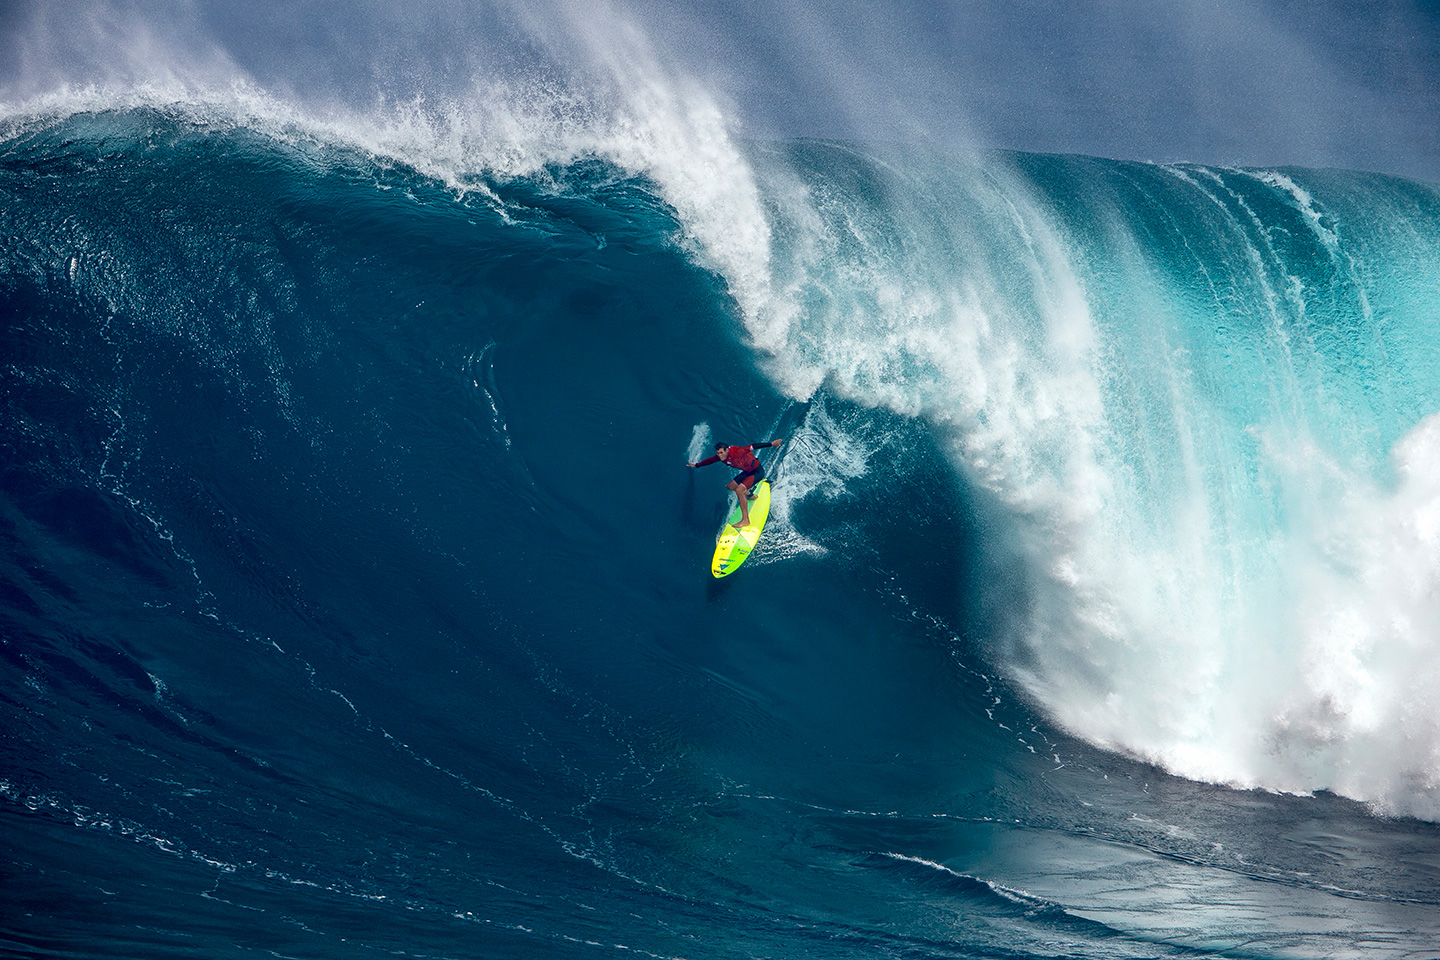 Peter Mel, Championship Big-Wave Surfer, on the Invention That Will Save Surfers' Lives